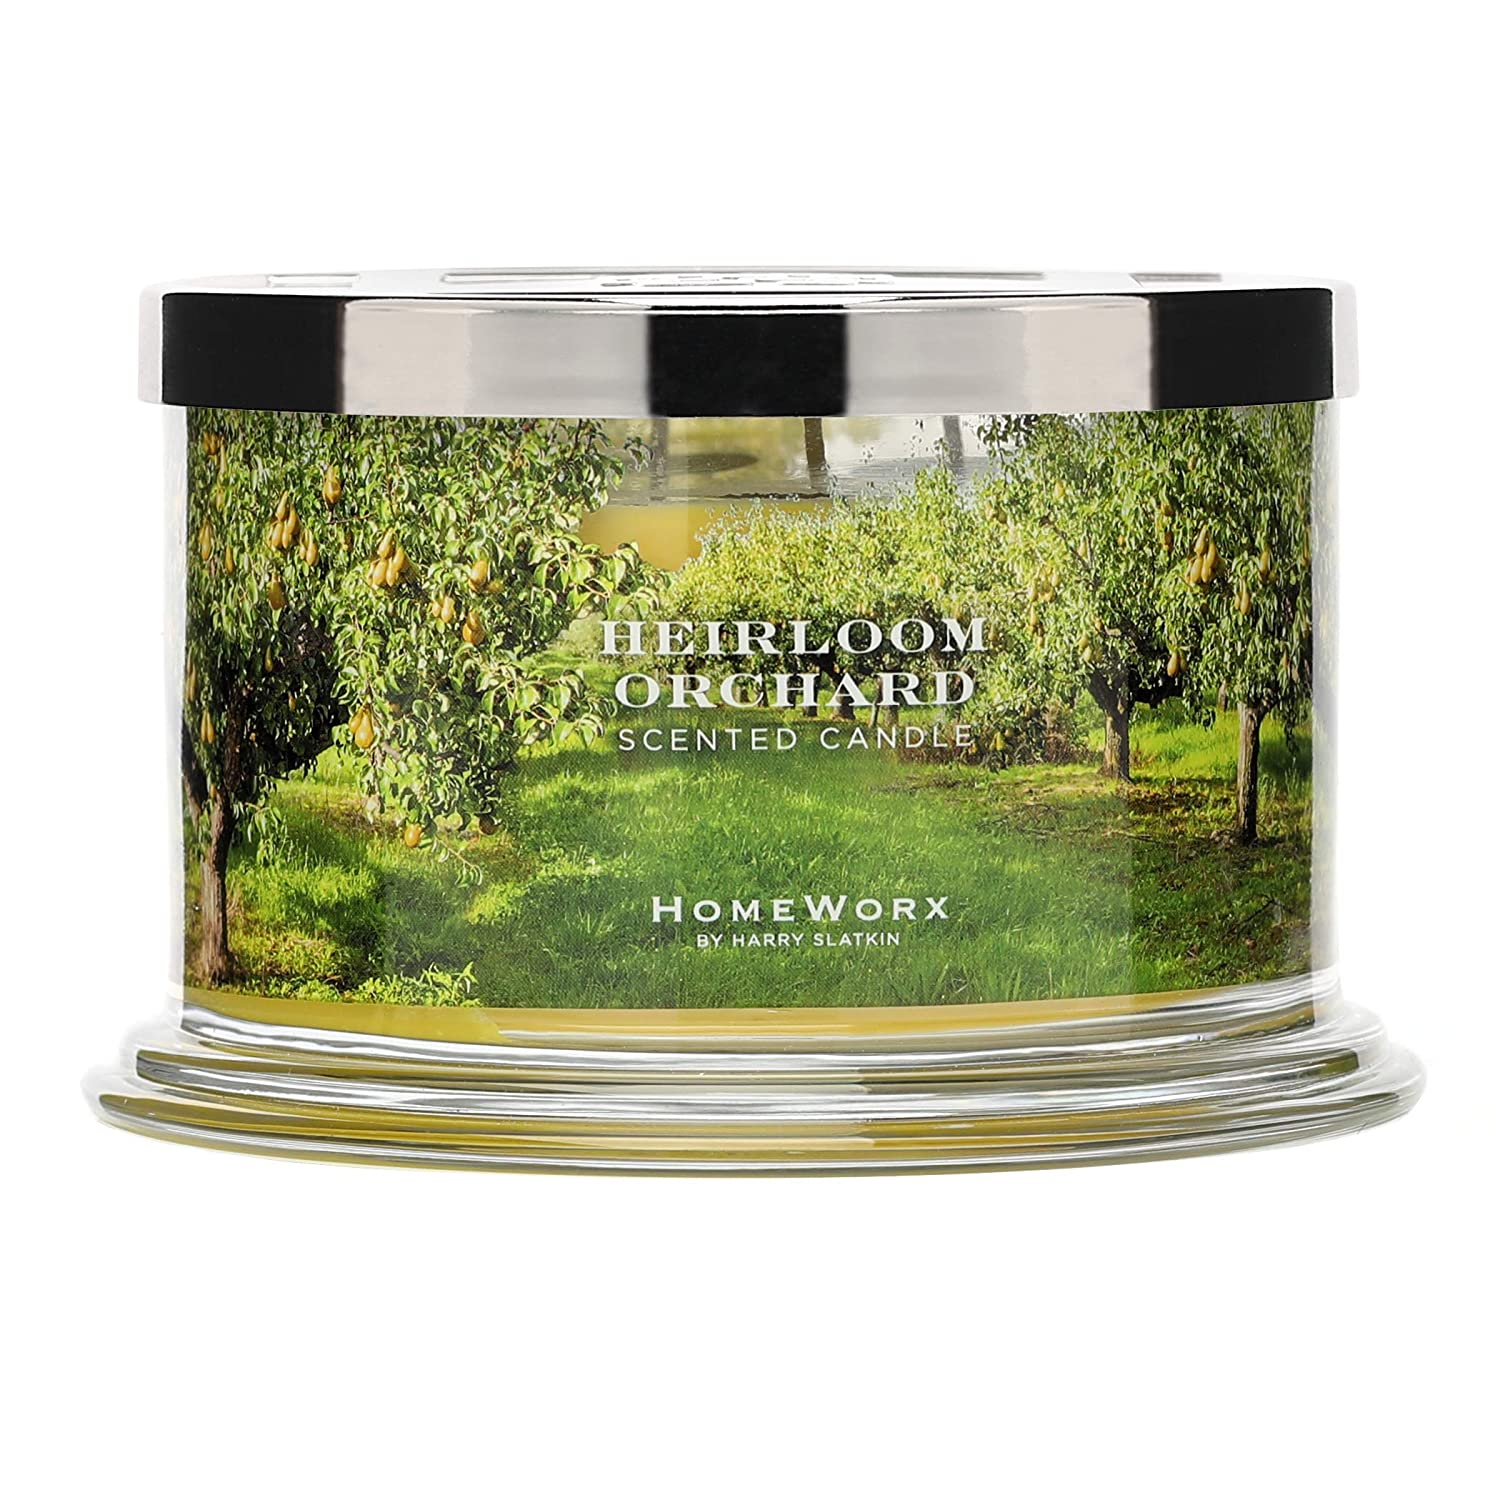 HomeWorx by Harry Slatkin 4 Wick Candle, 18 oz, Heirloom Orchard